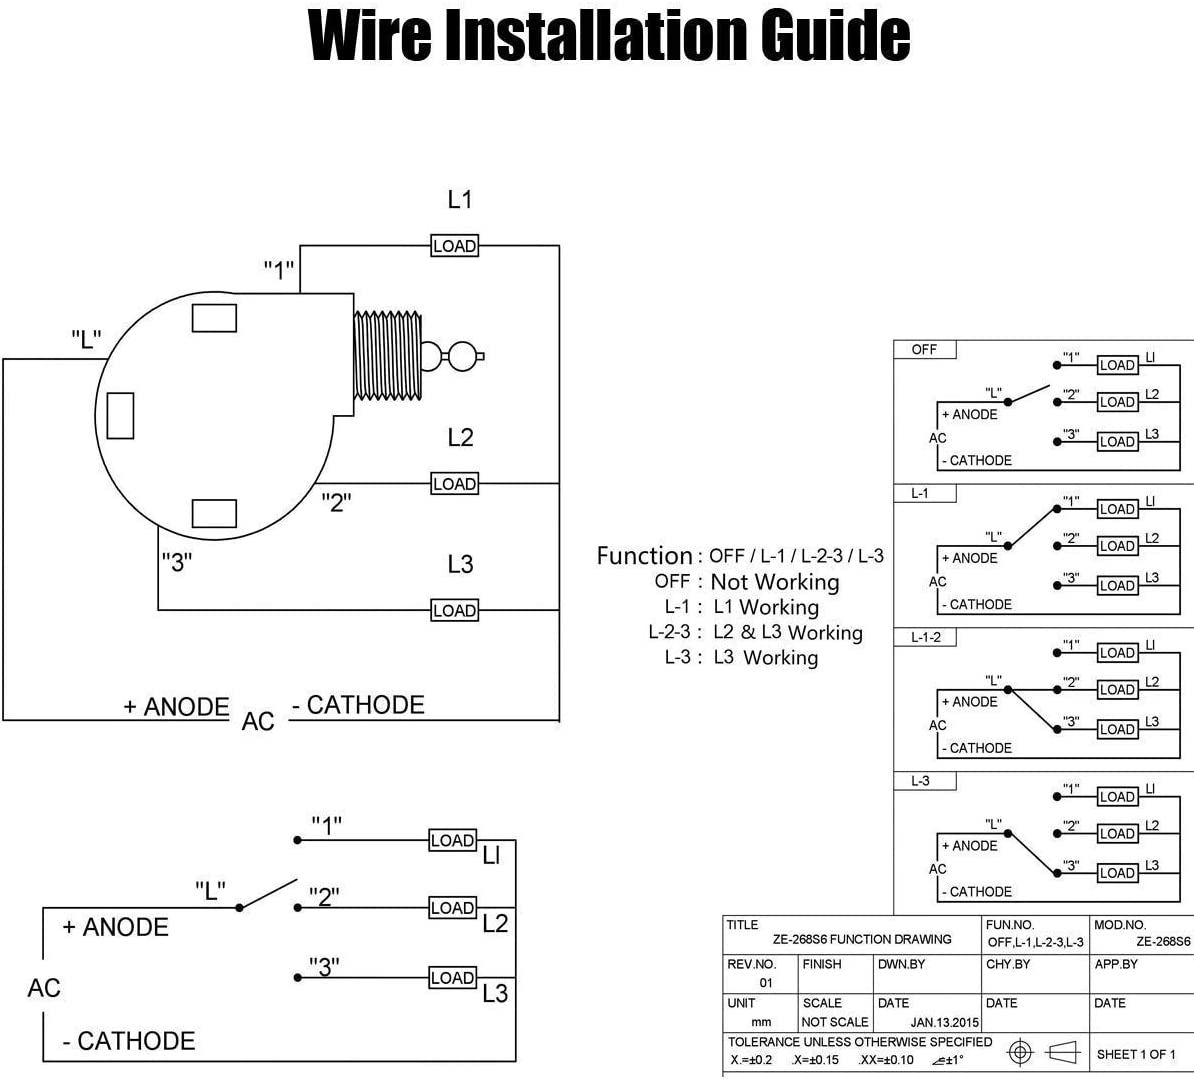 Zing Ear Switch Wiring Diagram Hampton Bay 2000 Malibu Fuel Pump Wiring Schematic Begeboy Wiring Diagram Source